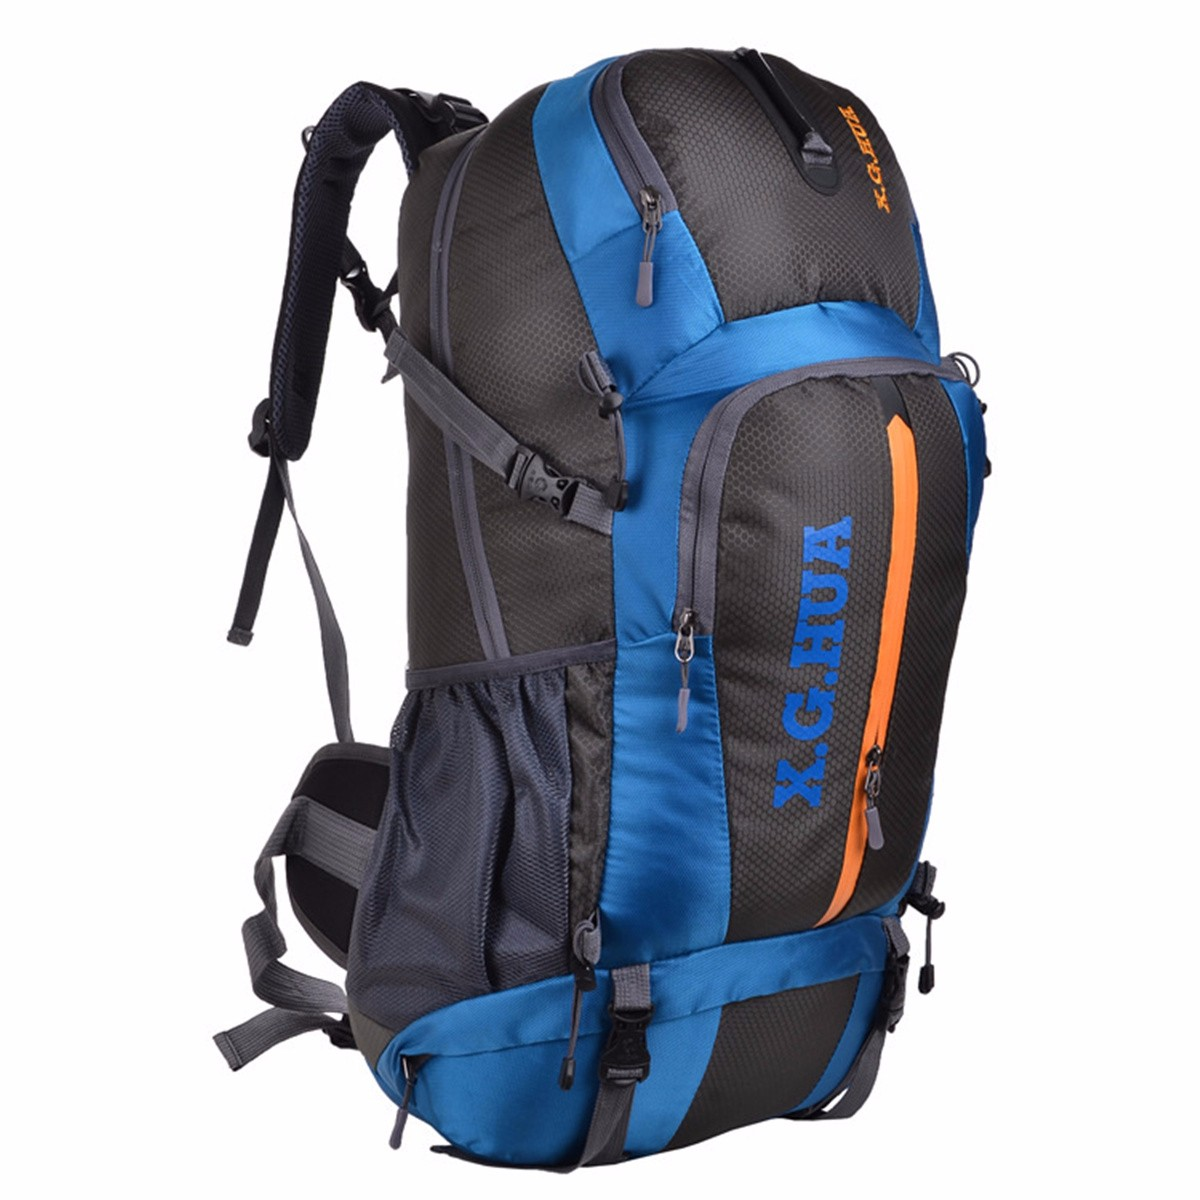 50L Outdoor Camping Hiking Traveling Mountaineering Backpack